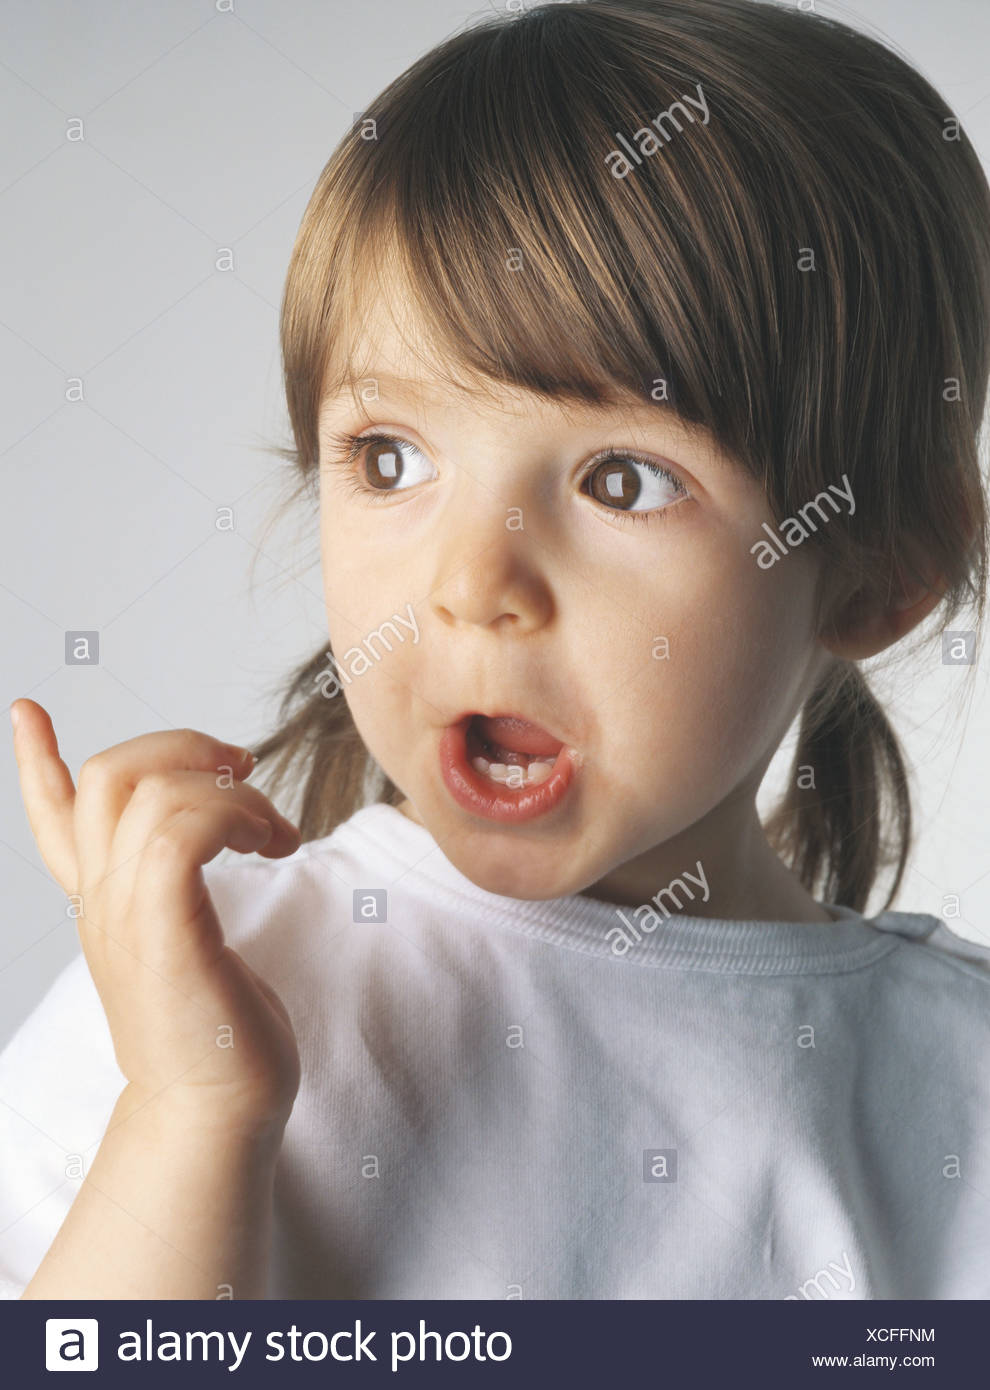 Little girl making face and pointing, portrait - Stock Image